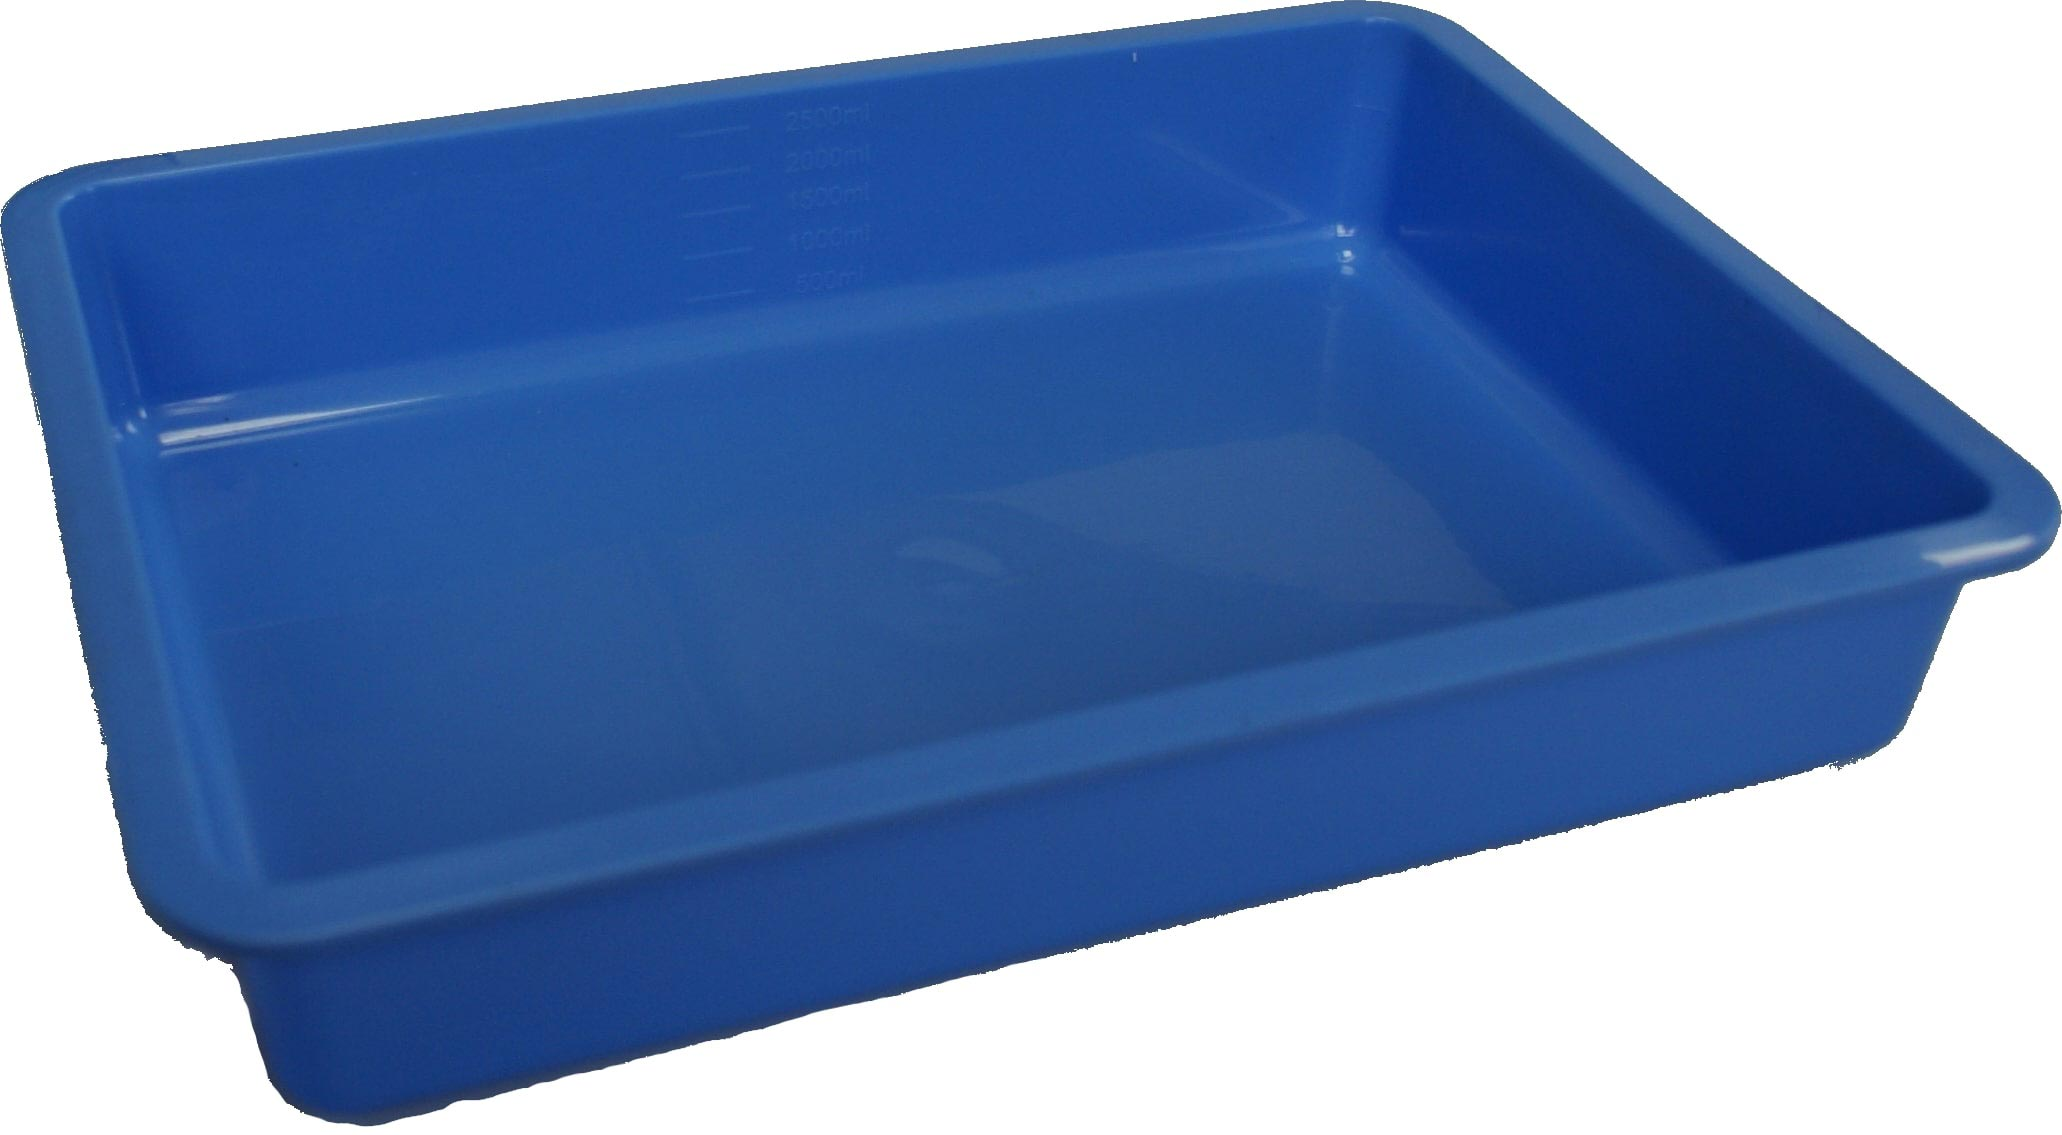 Sterilizable Blue Medical Tray